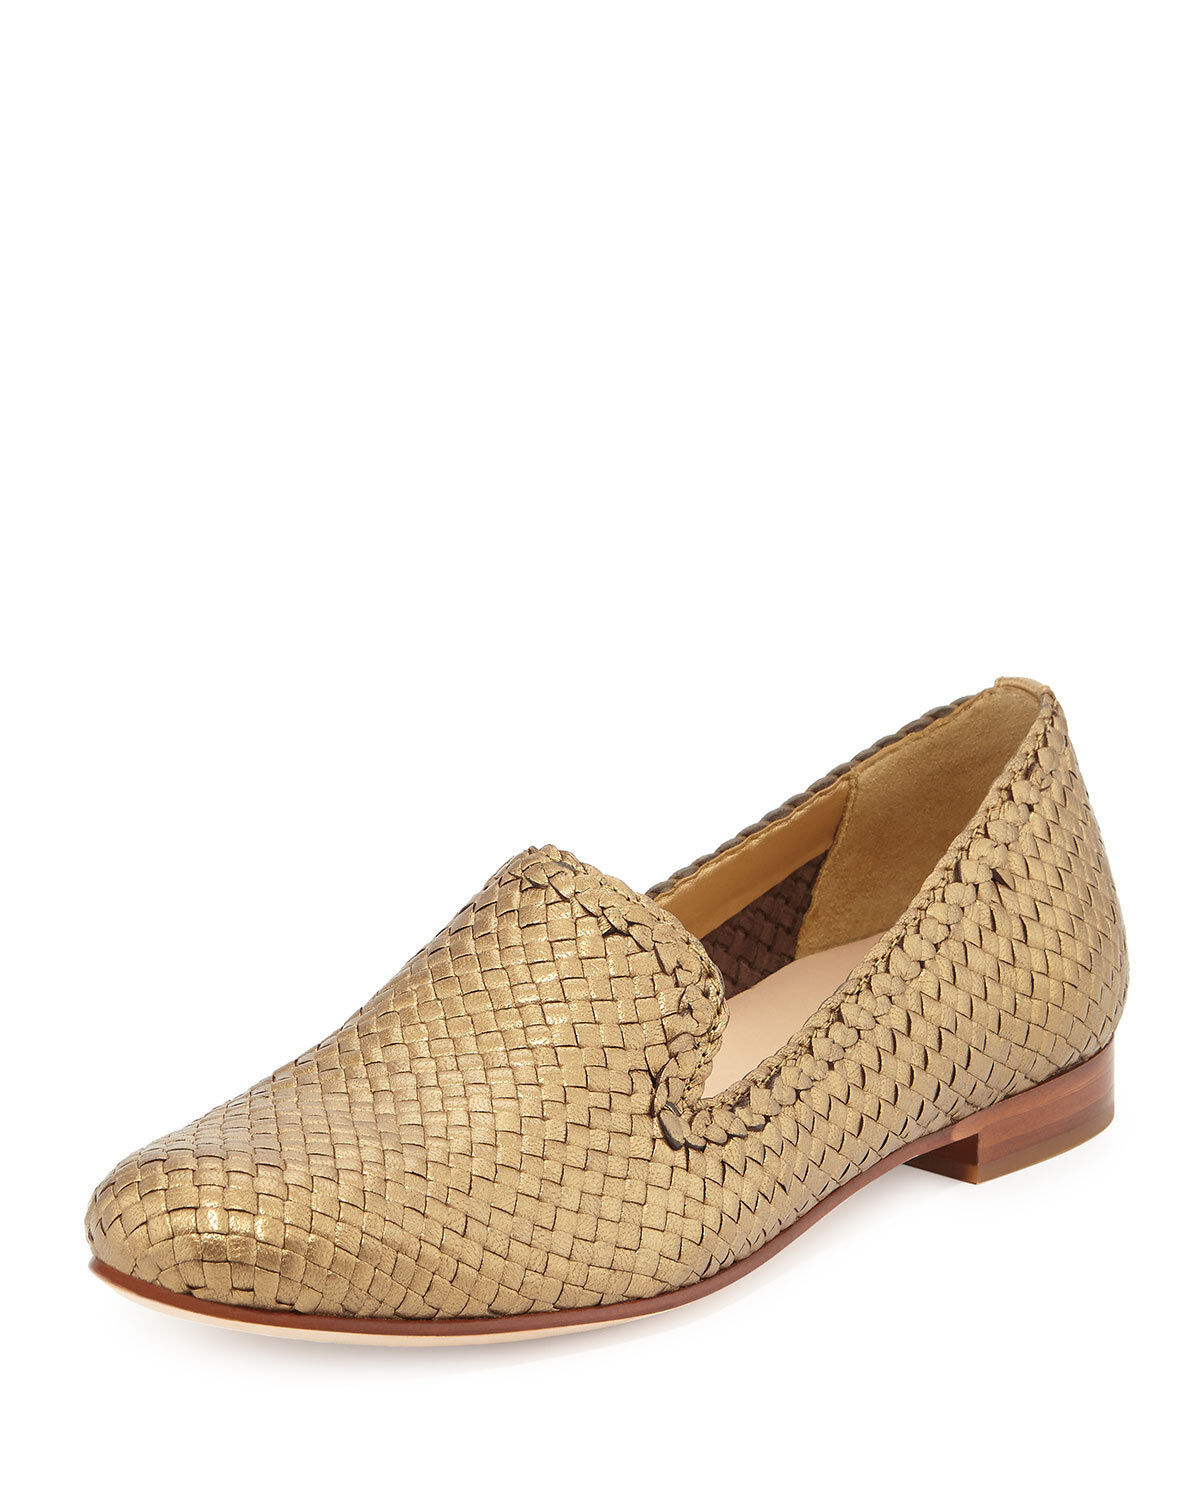 Cole Haan NIB Sabrina Woven Leather Leather Woven Metallic Loafer 10 Flat Glam Shoe Gold $250 12b85a